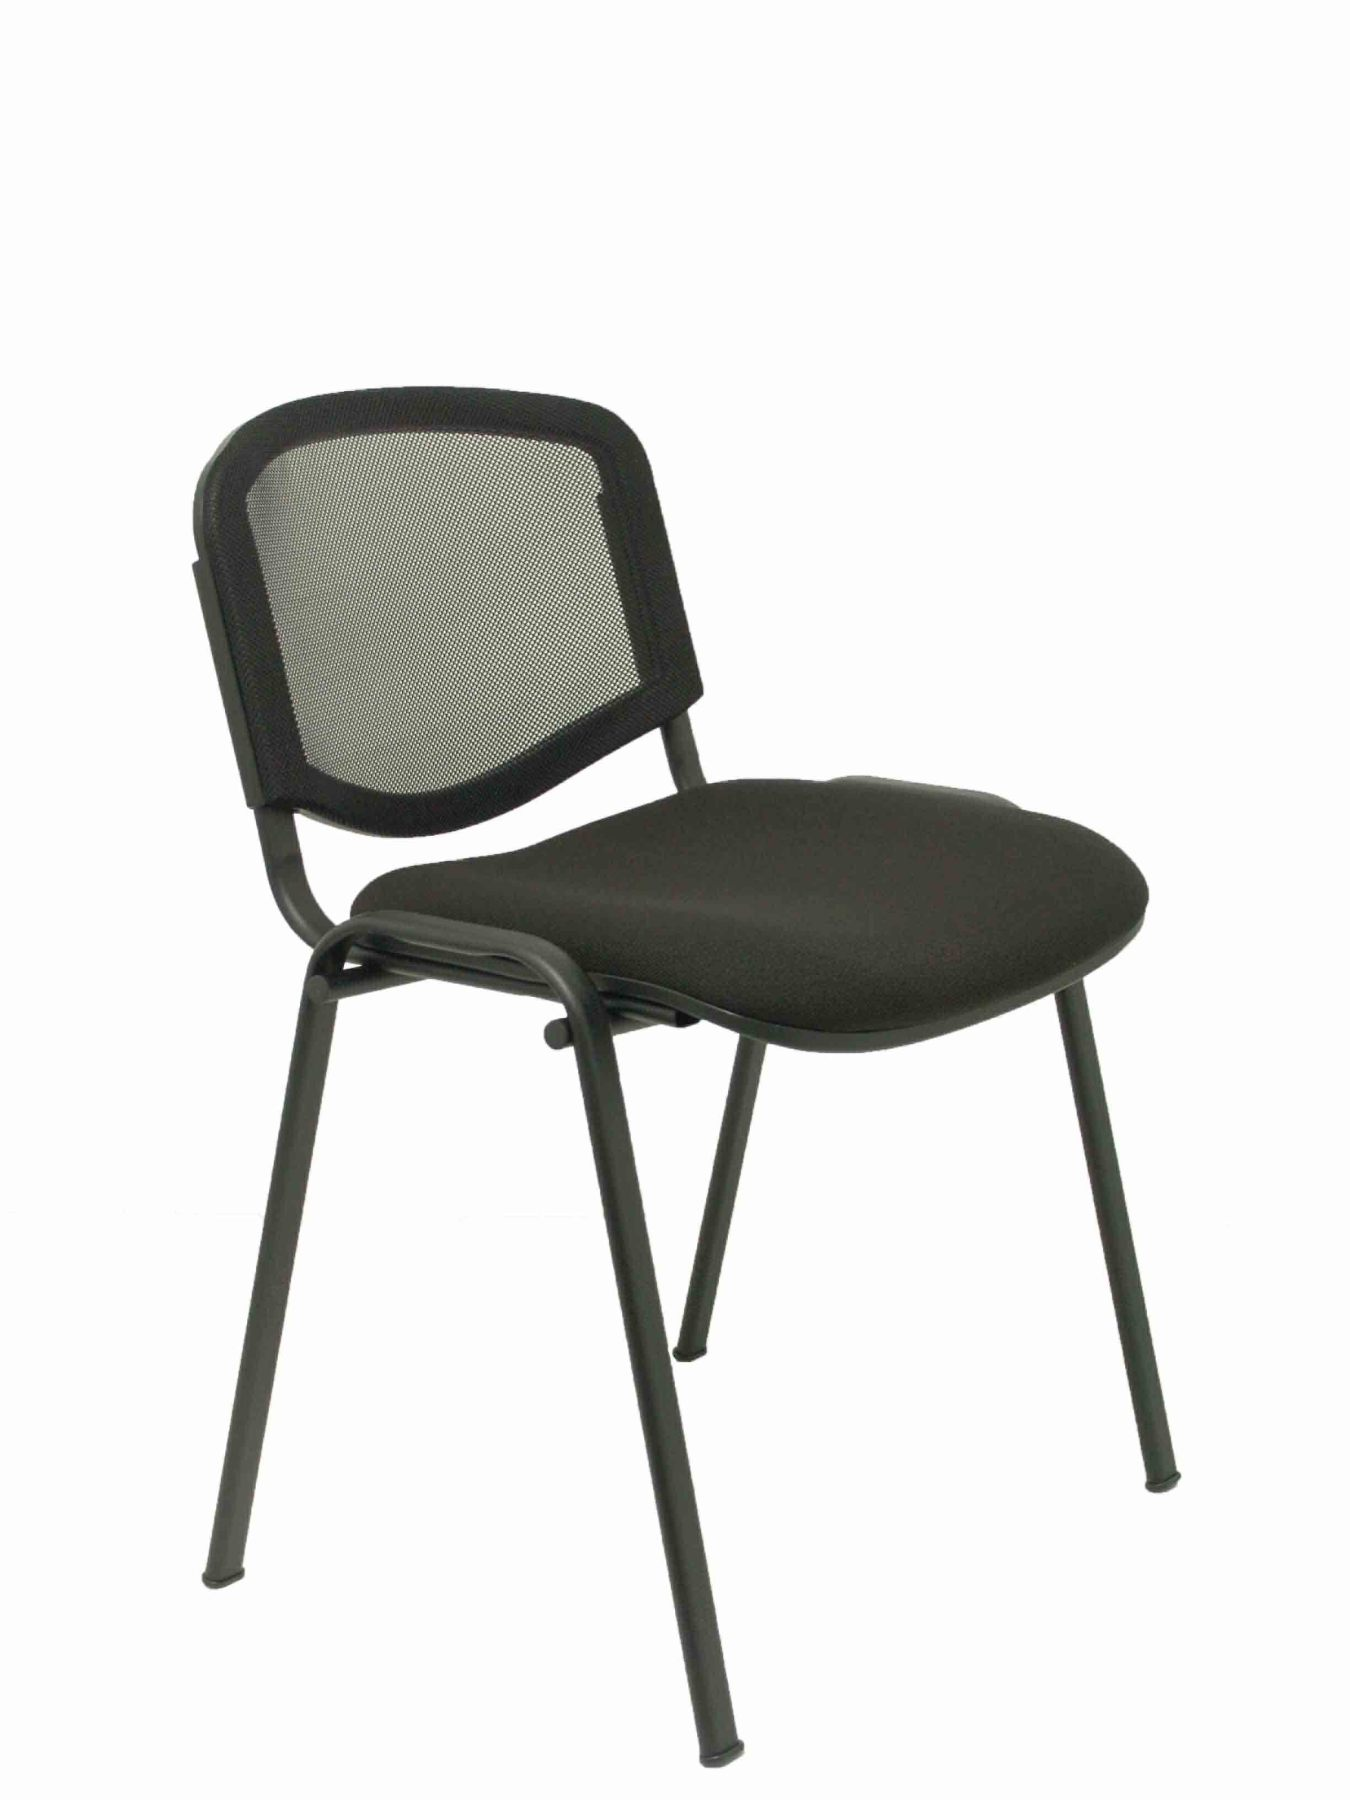 Pack Of 4 Chairs Confident Ergonomic, Stackable, Multi-purpose And Structure In Black Color Seat Upholstered In Fabric AR